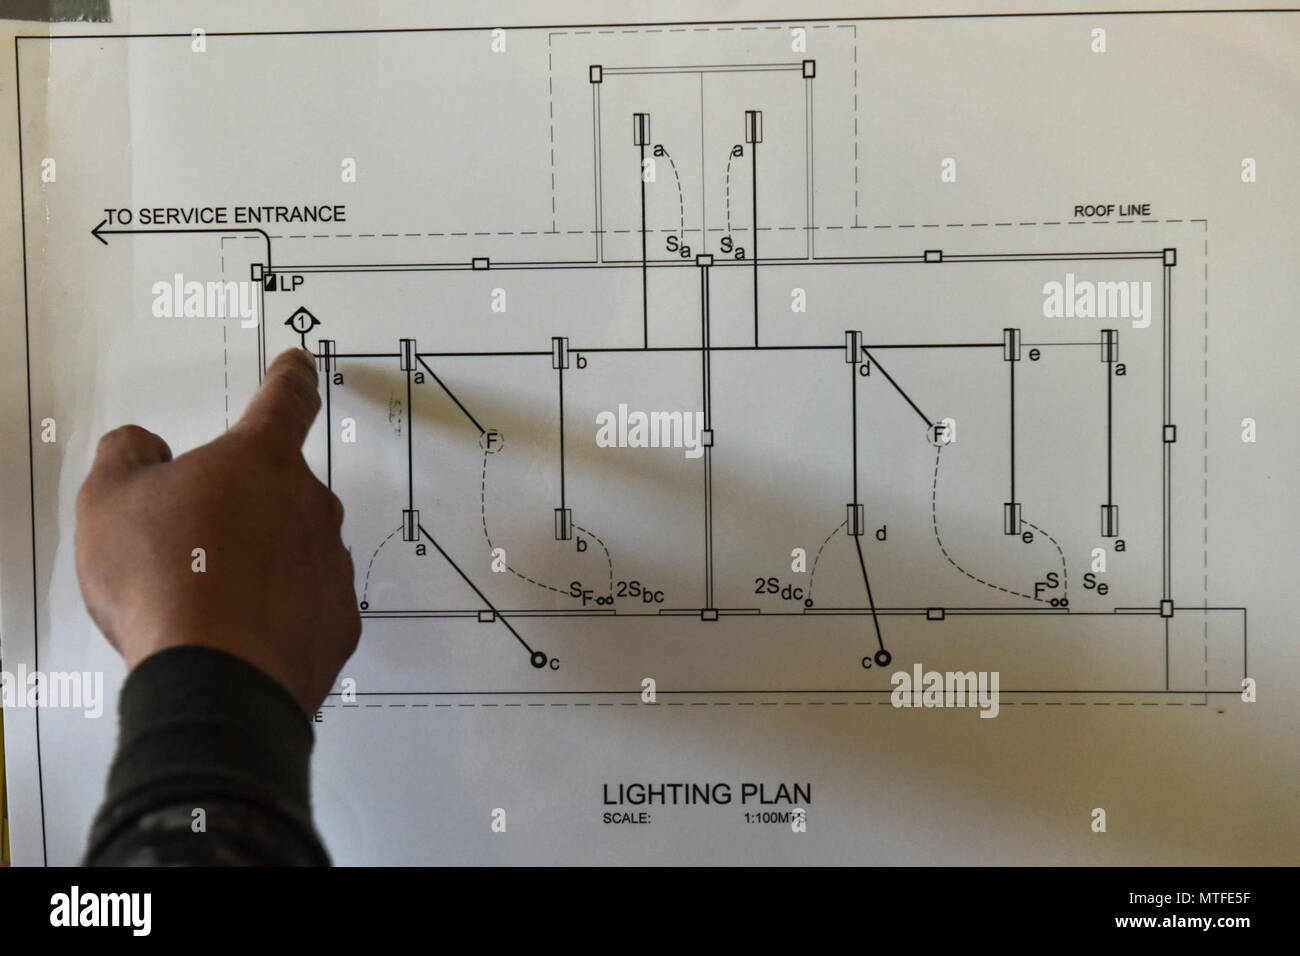 U S Military Engineers Stock Photos Electrical Service Entrance Wiring Diagram Armed Forces Of The Philippines And Us Review Plans For A Construction